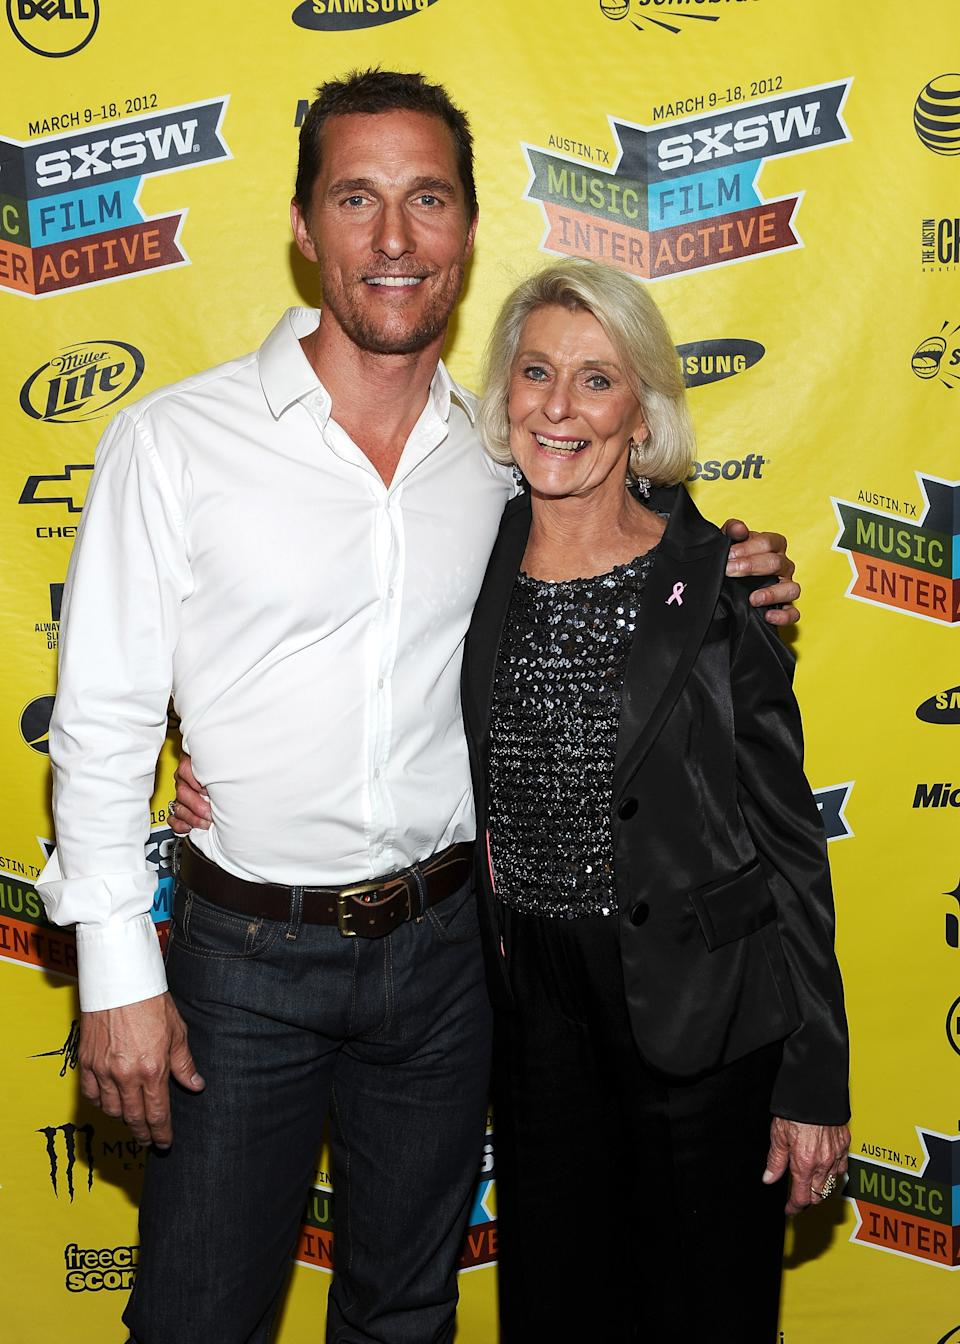 """Matthew McConaughey attends """"Bernie"""" Greenroom Photo Opduring the 2012 SXSW Music, Film + Interactive Festival at Paramount Theatre on March 13, 2012 in Austin, Texas."""